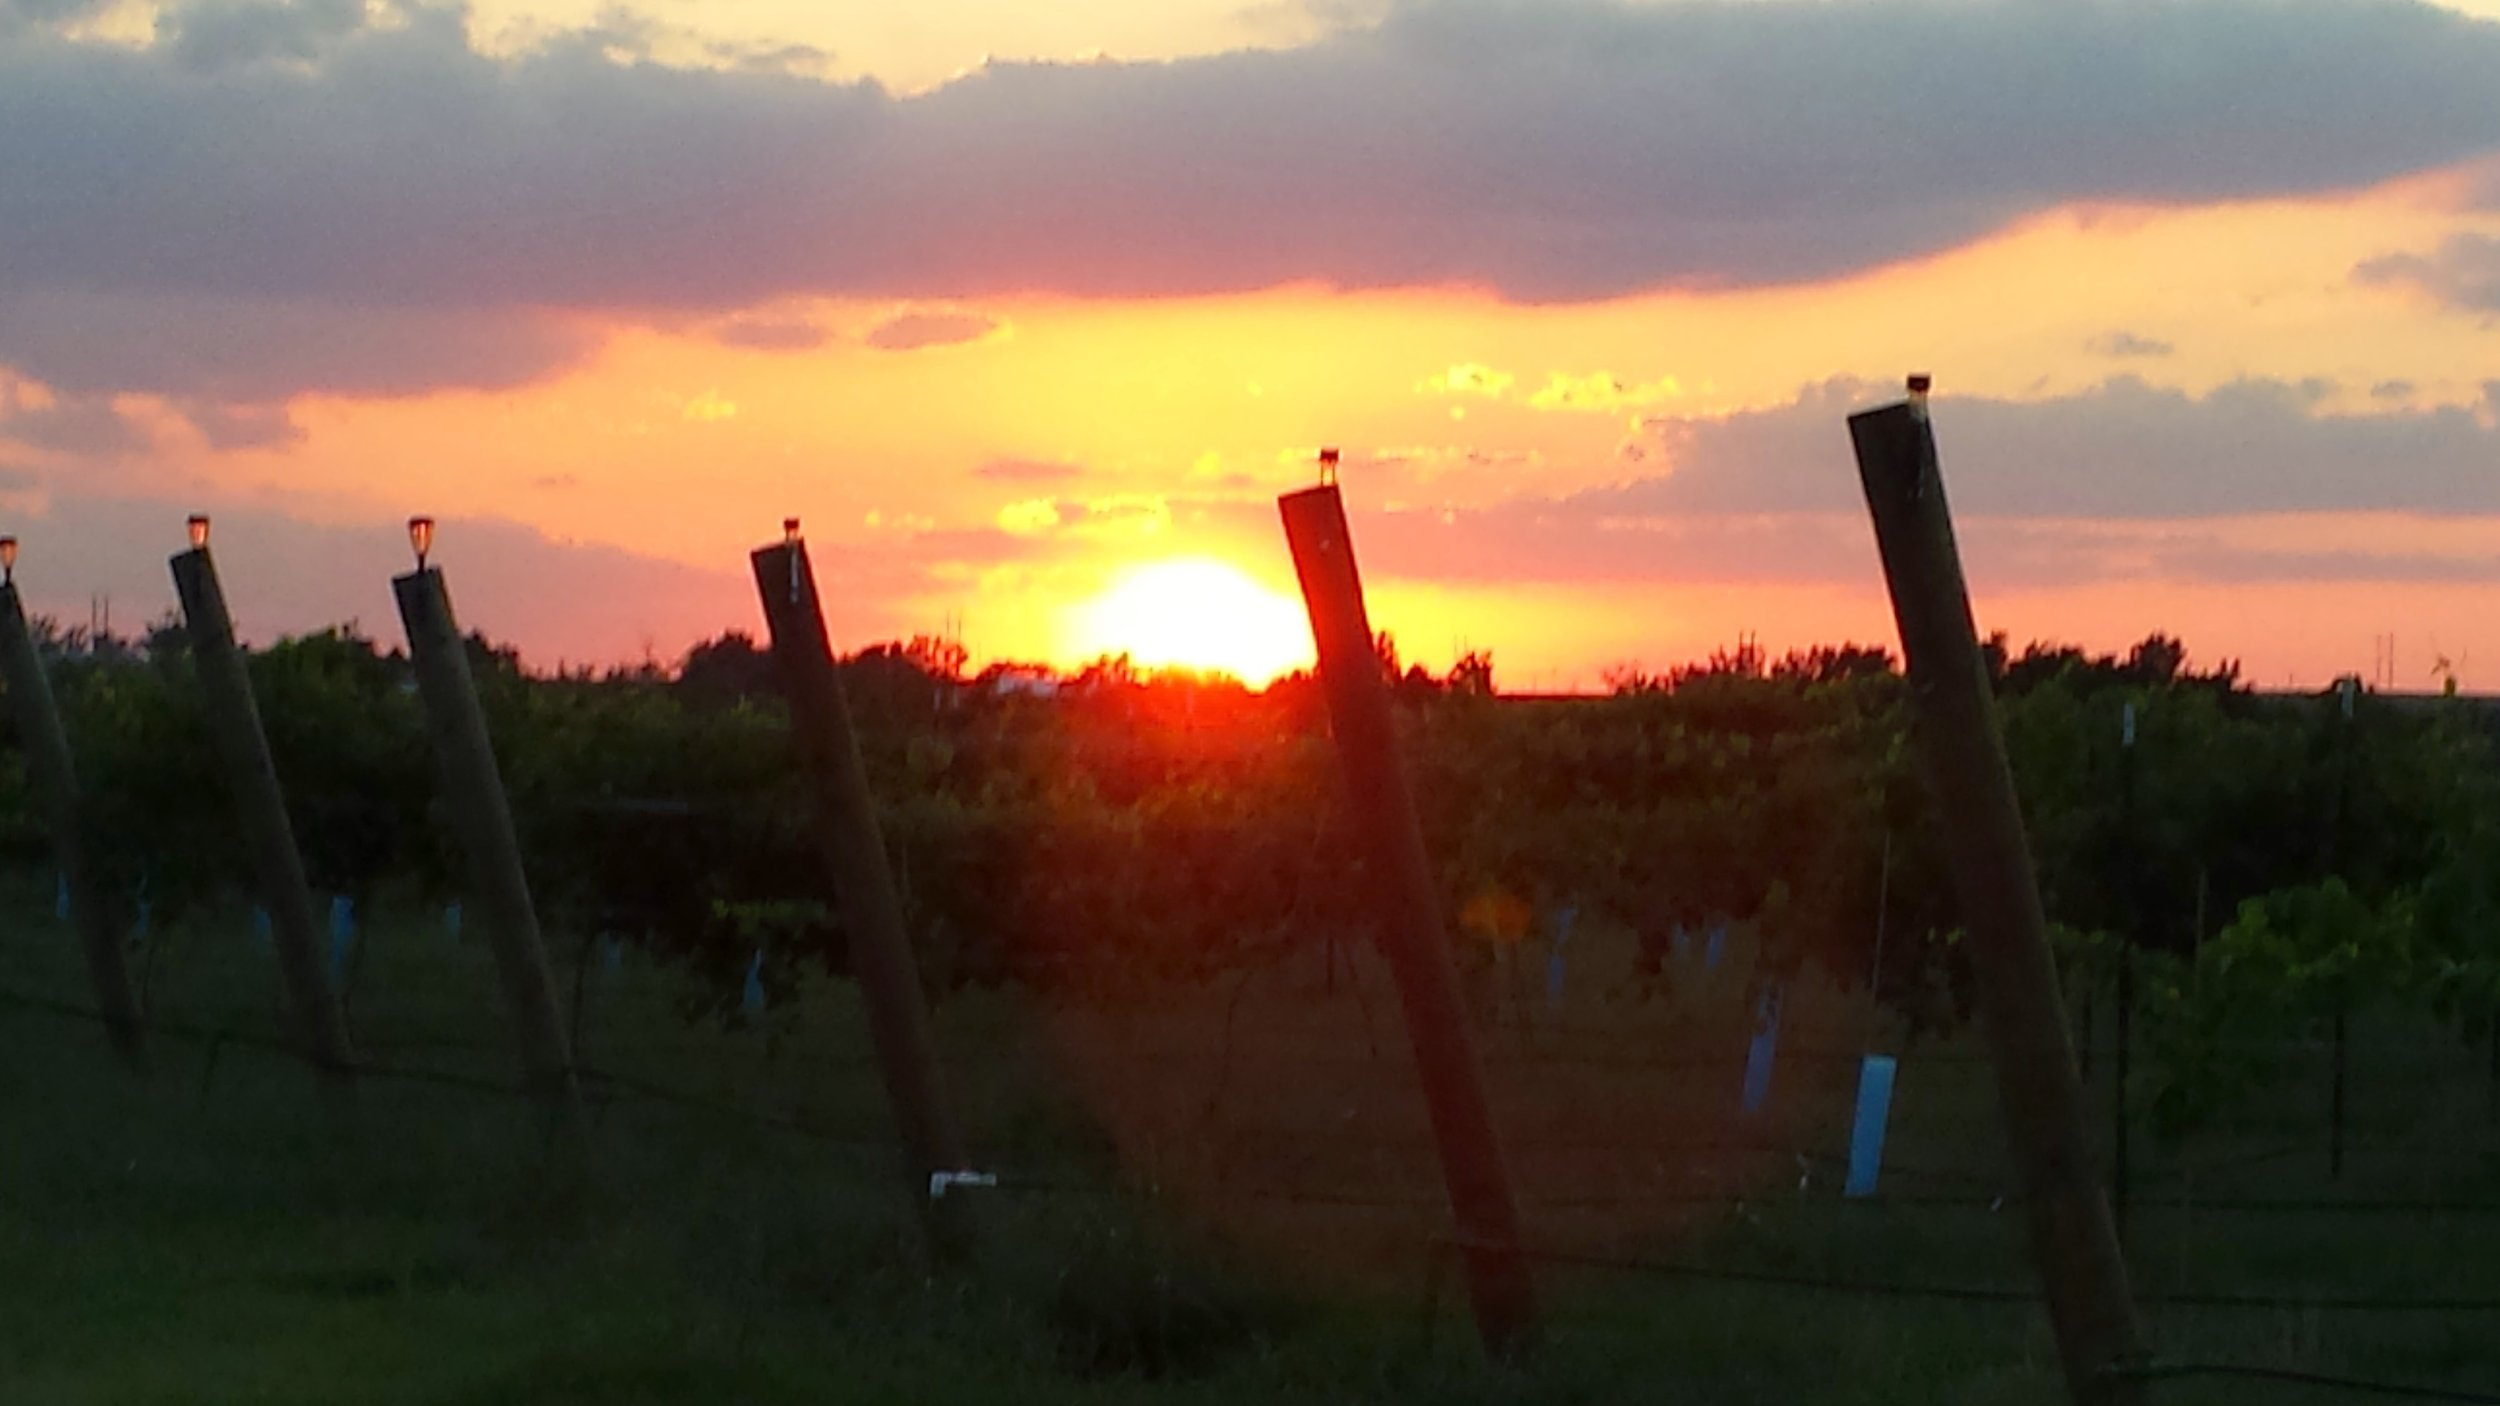 Enjoy a walk through the vineyards with your camera and capture a beautiful sunset